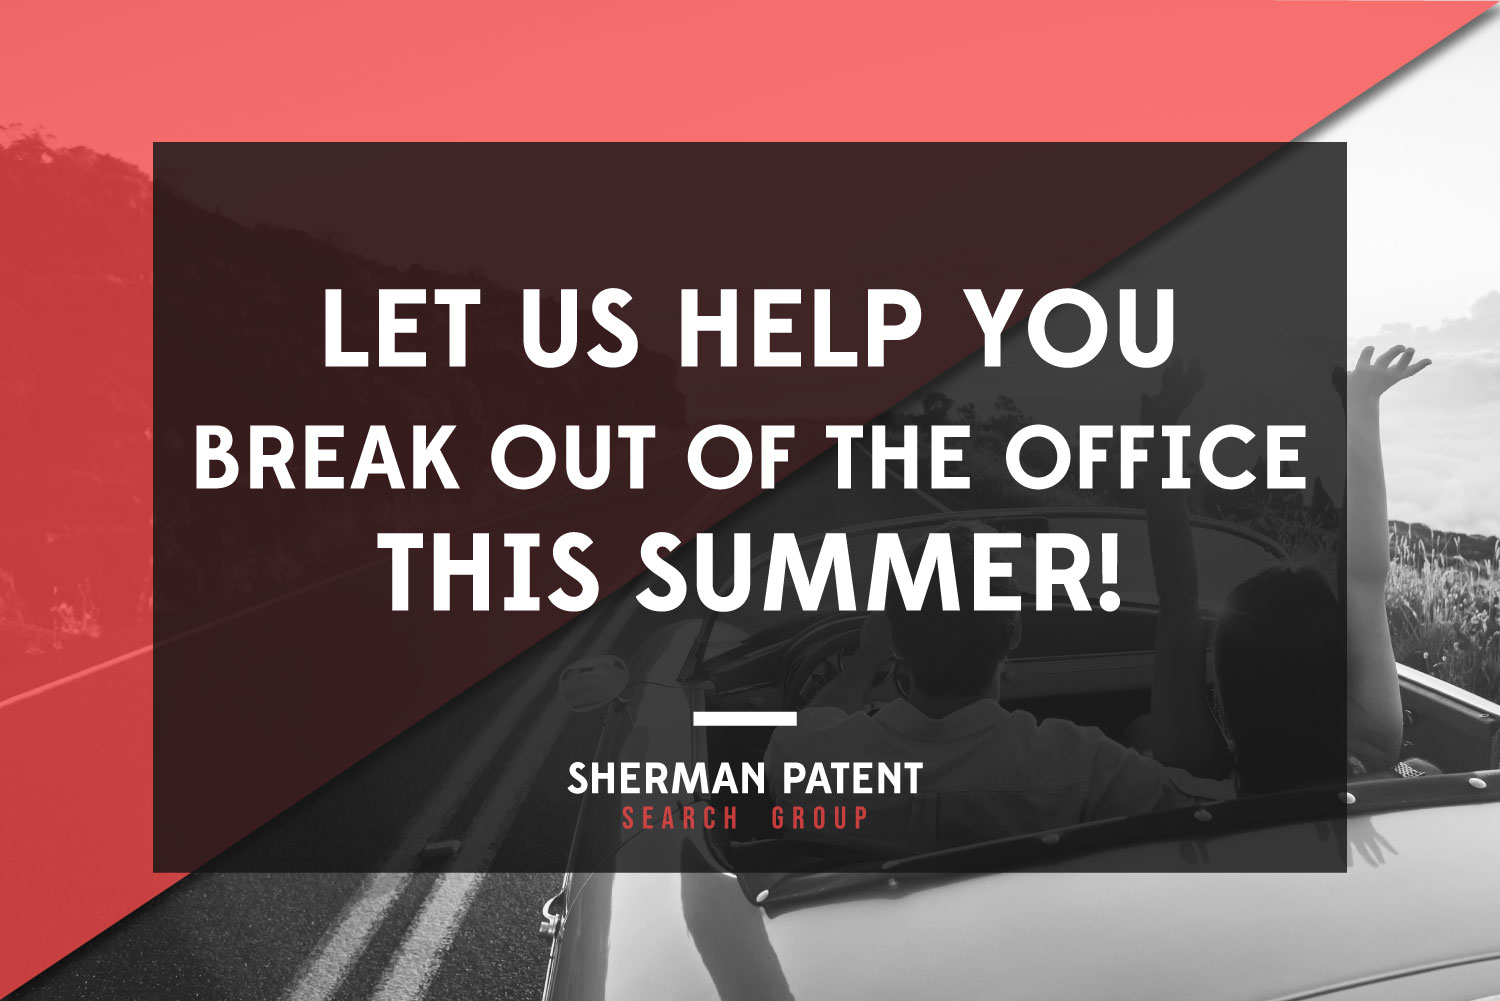 SPSG_000110-15_Let-us-help-you-break-out-of-the-office-this-summer.jpg